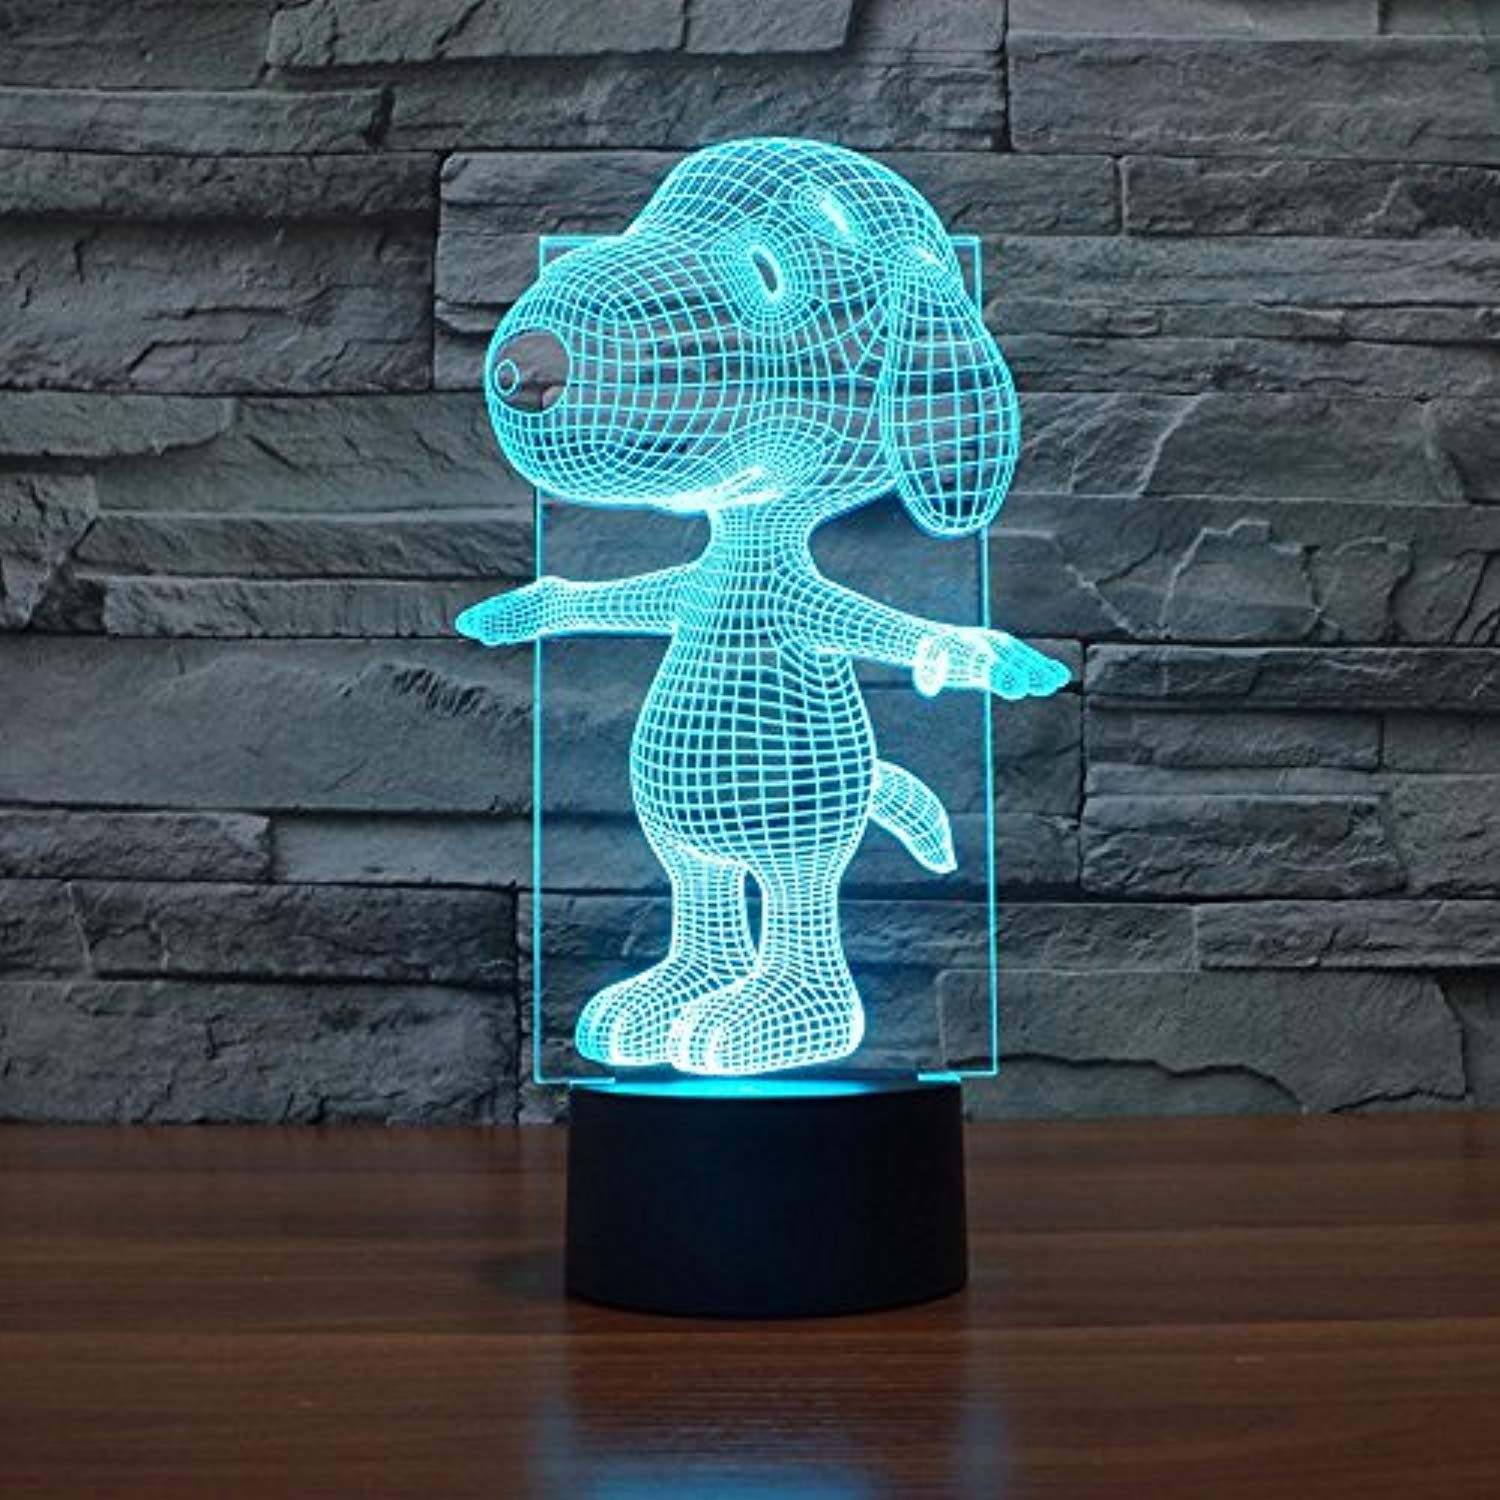 Snoopy 3d Lamp Night Light Touch Table Desk Lamps Elstey 7 Color Changing Lights With Acrylic Flat A Arte Simples Luminarias Led Ideias De Decoracao Para Casa